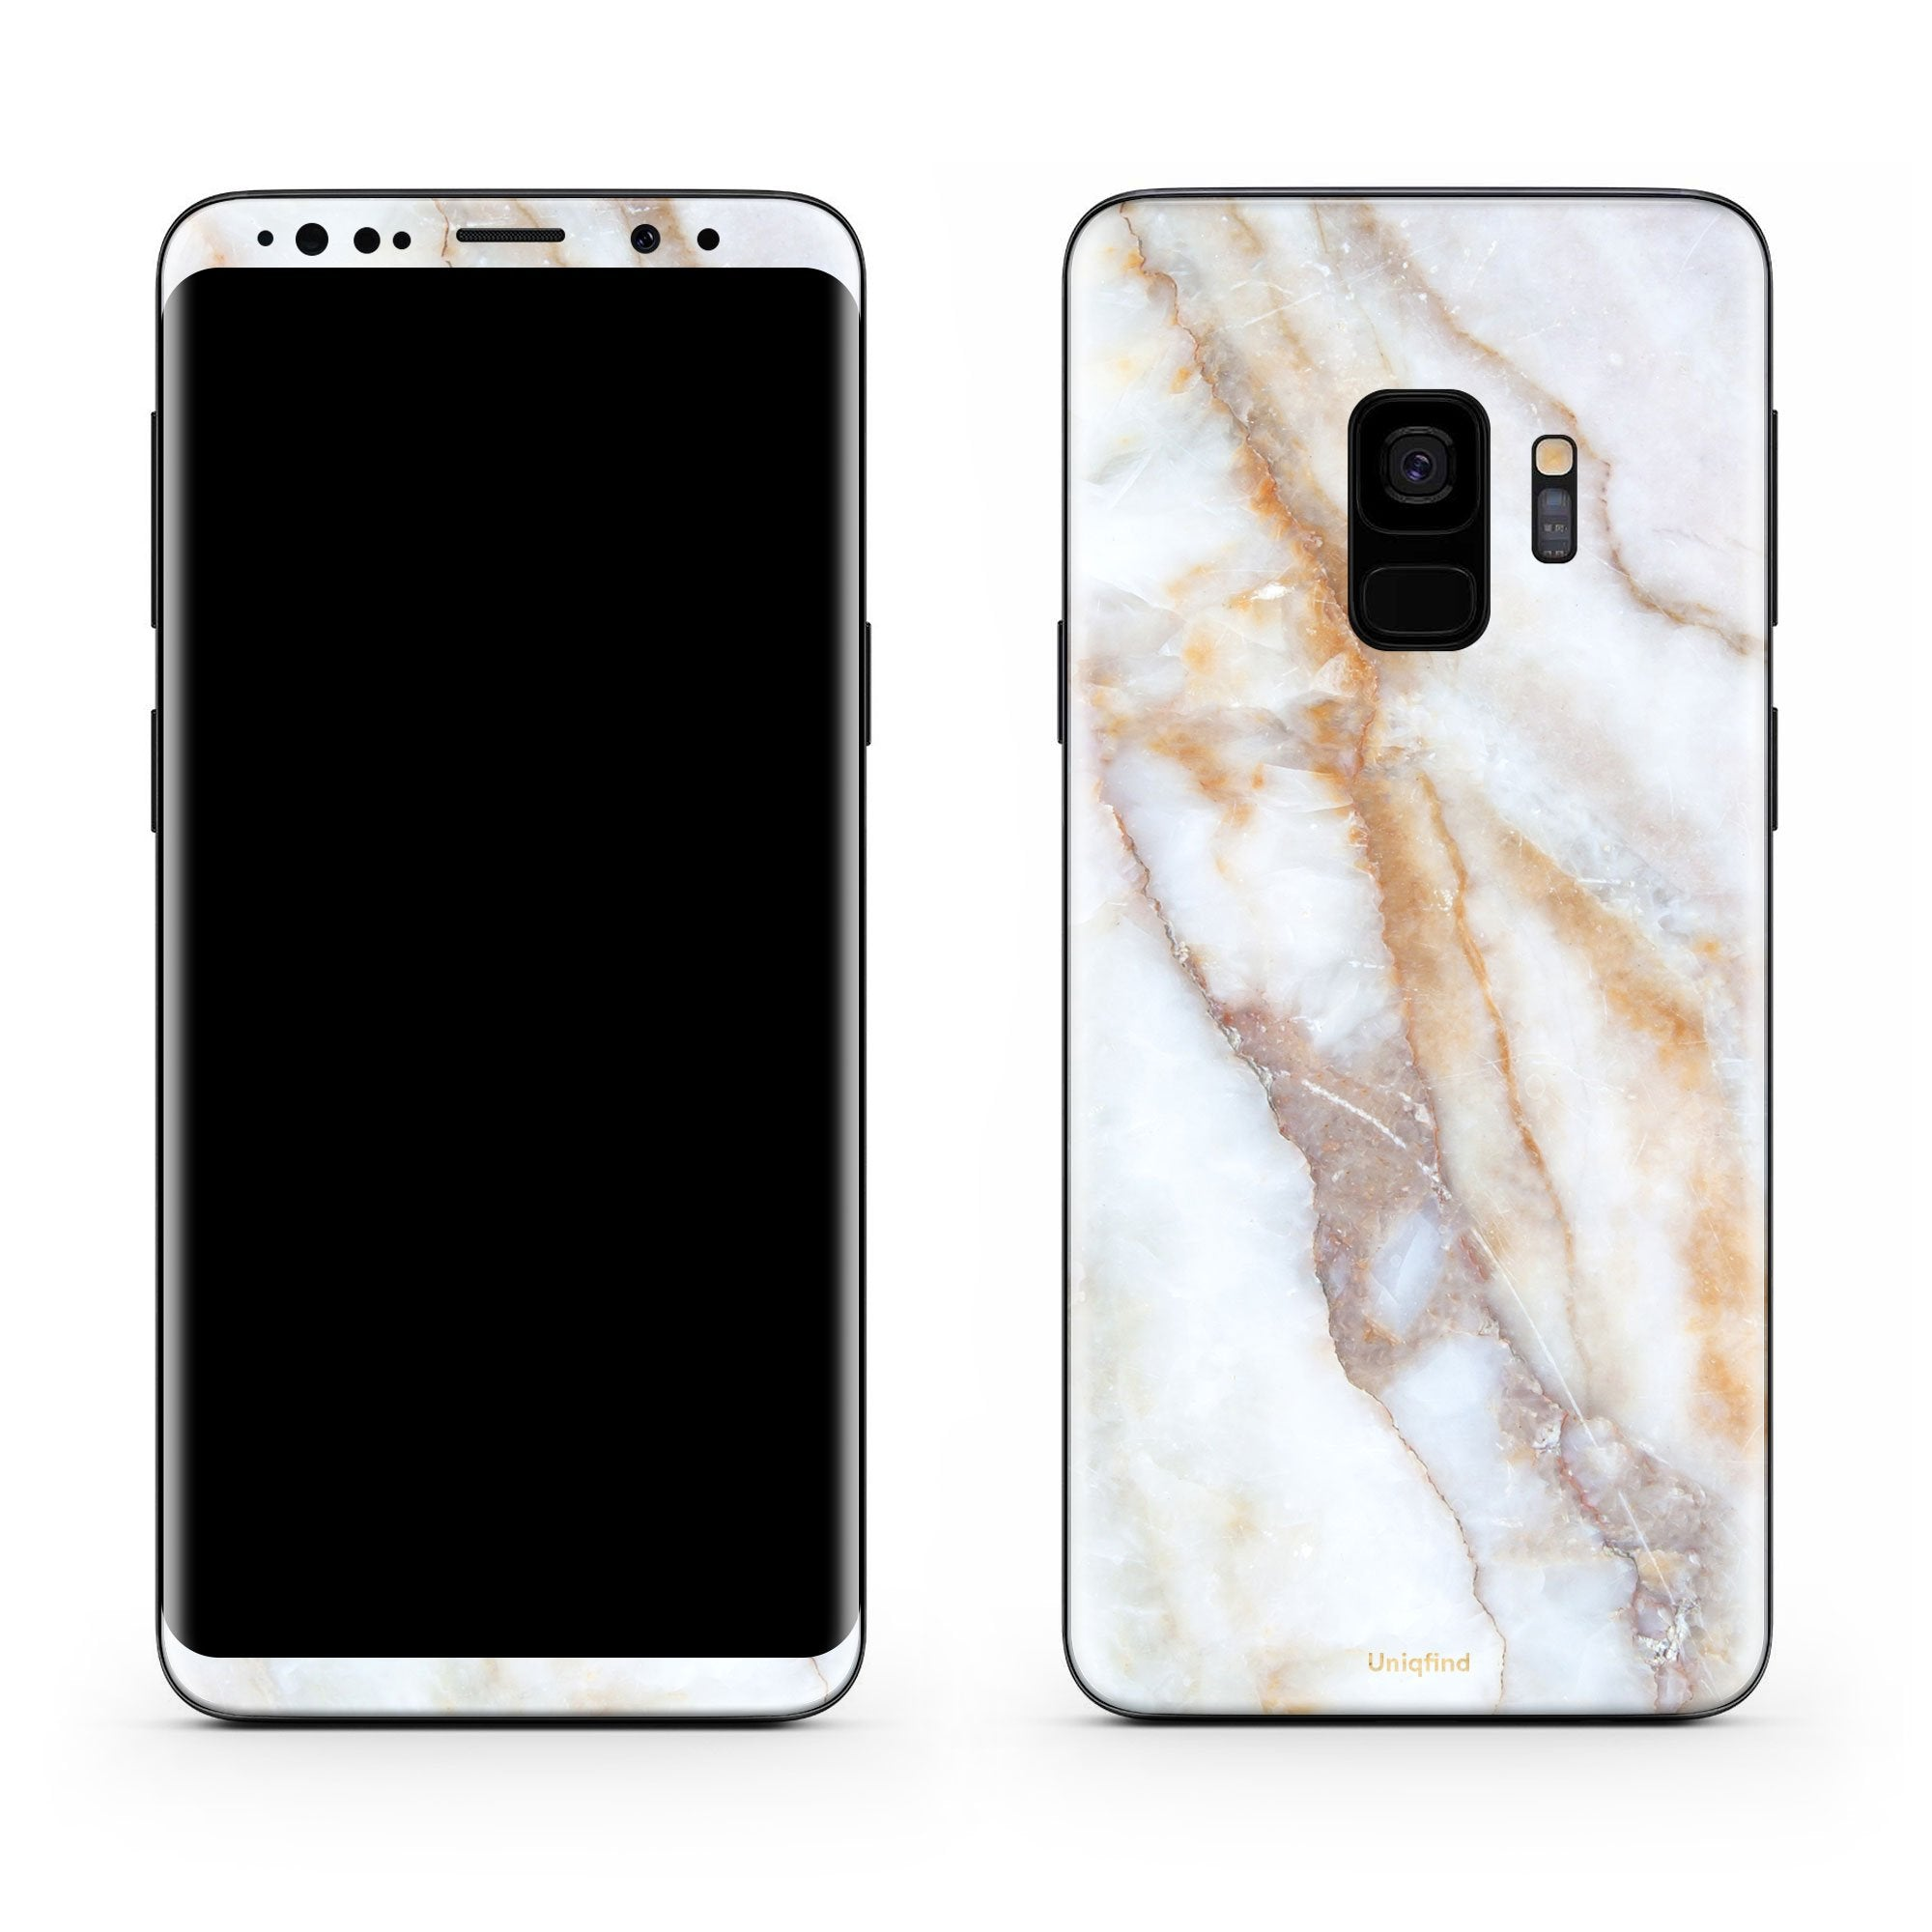 Vanilla Marble Galaxy S9 Plus Skin + Case